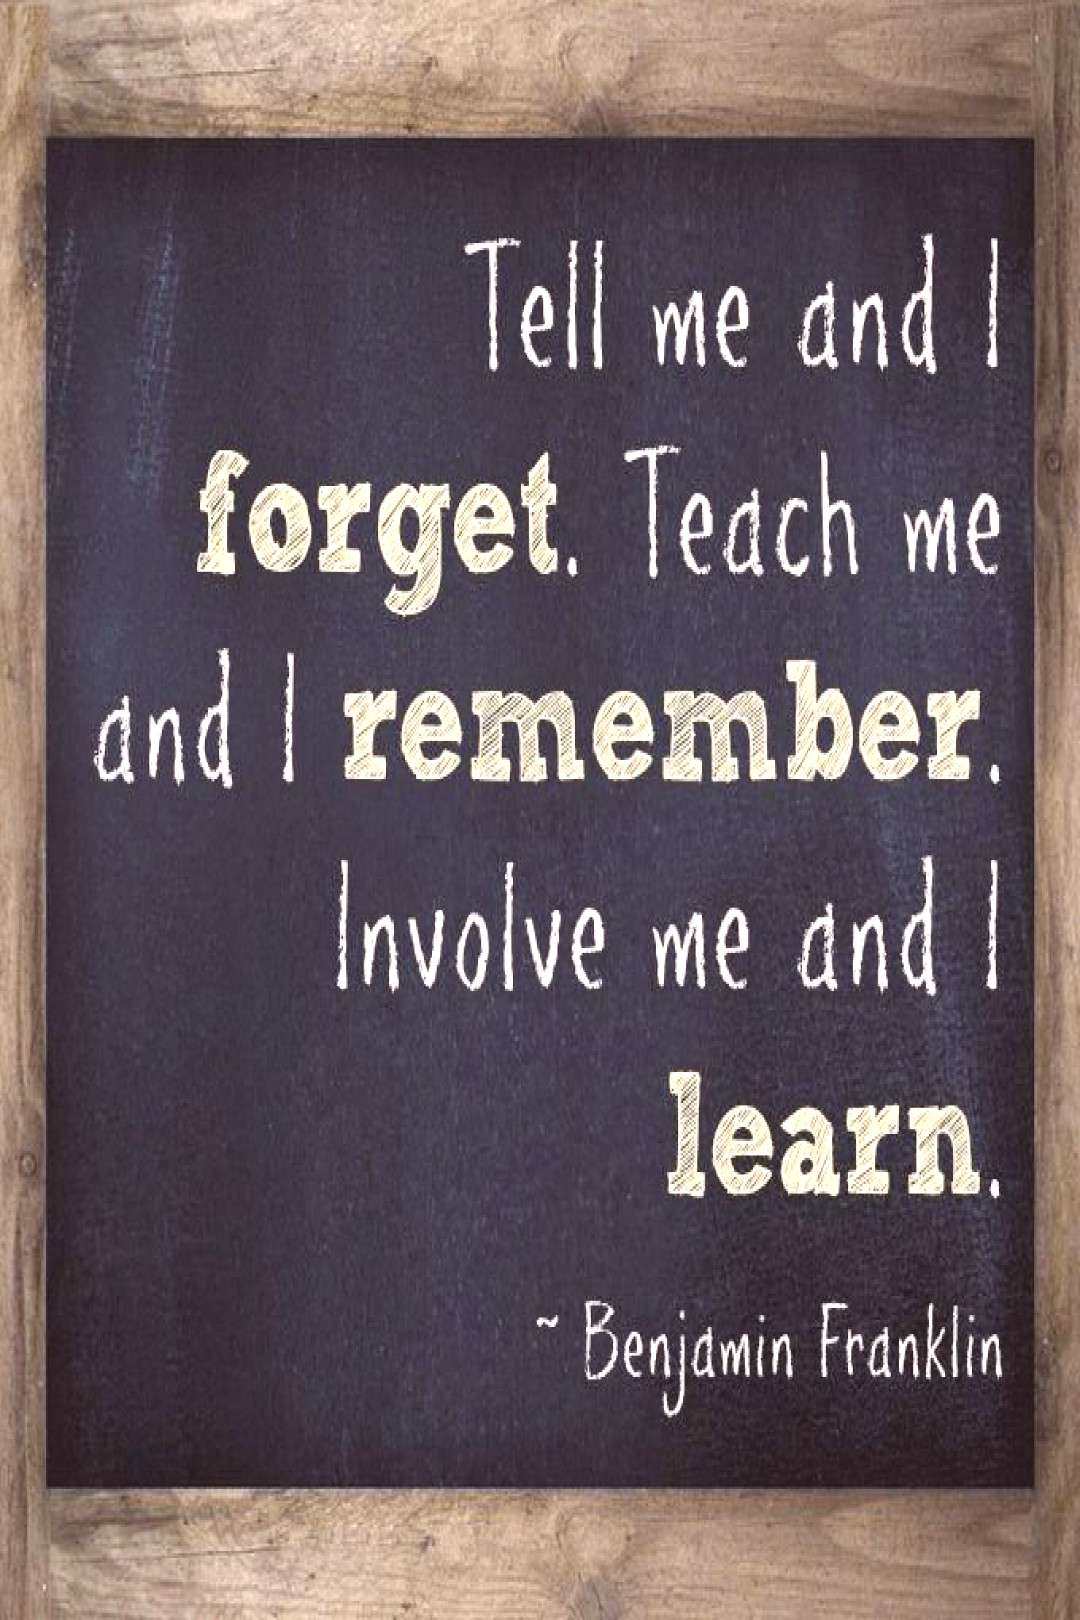 Tell me and I forget. Teach me and I remember. Involve me and I learn.  What a great quote for te